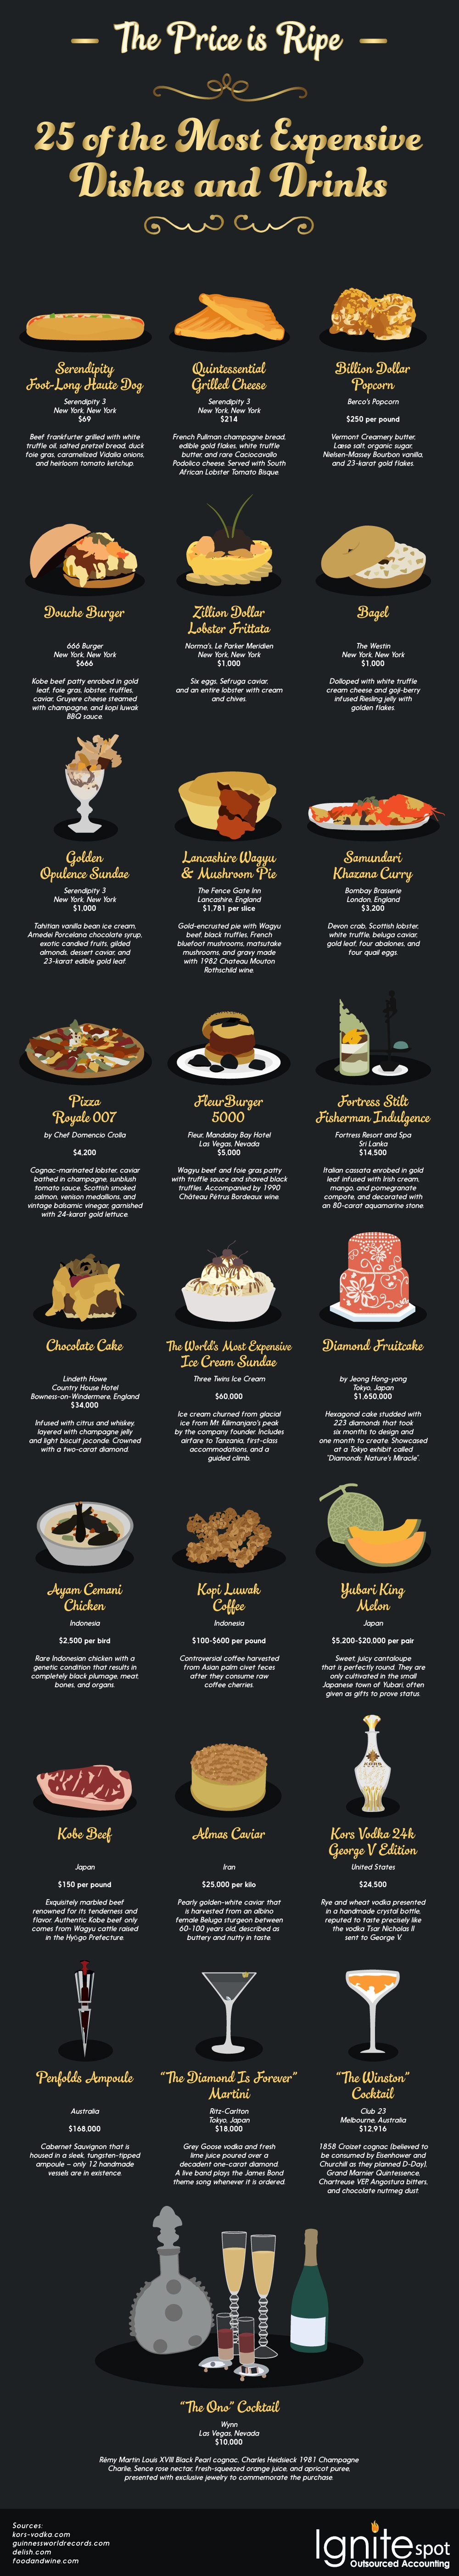 ExpensiveFoods6.jpg